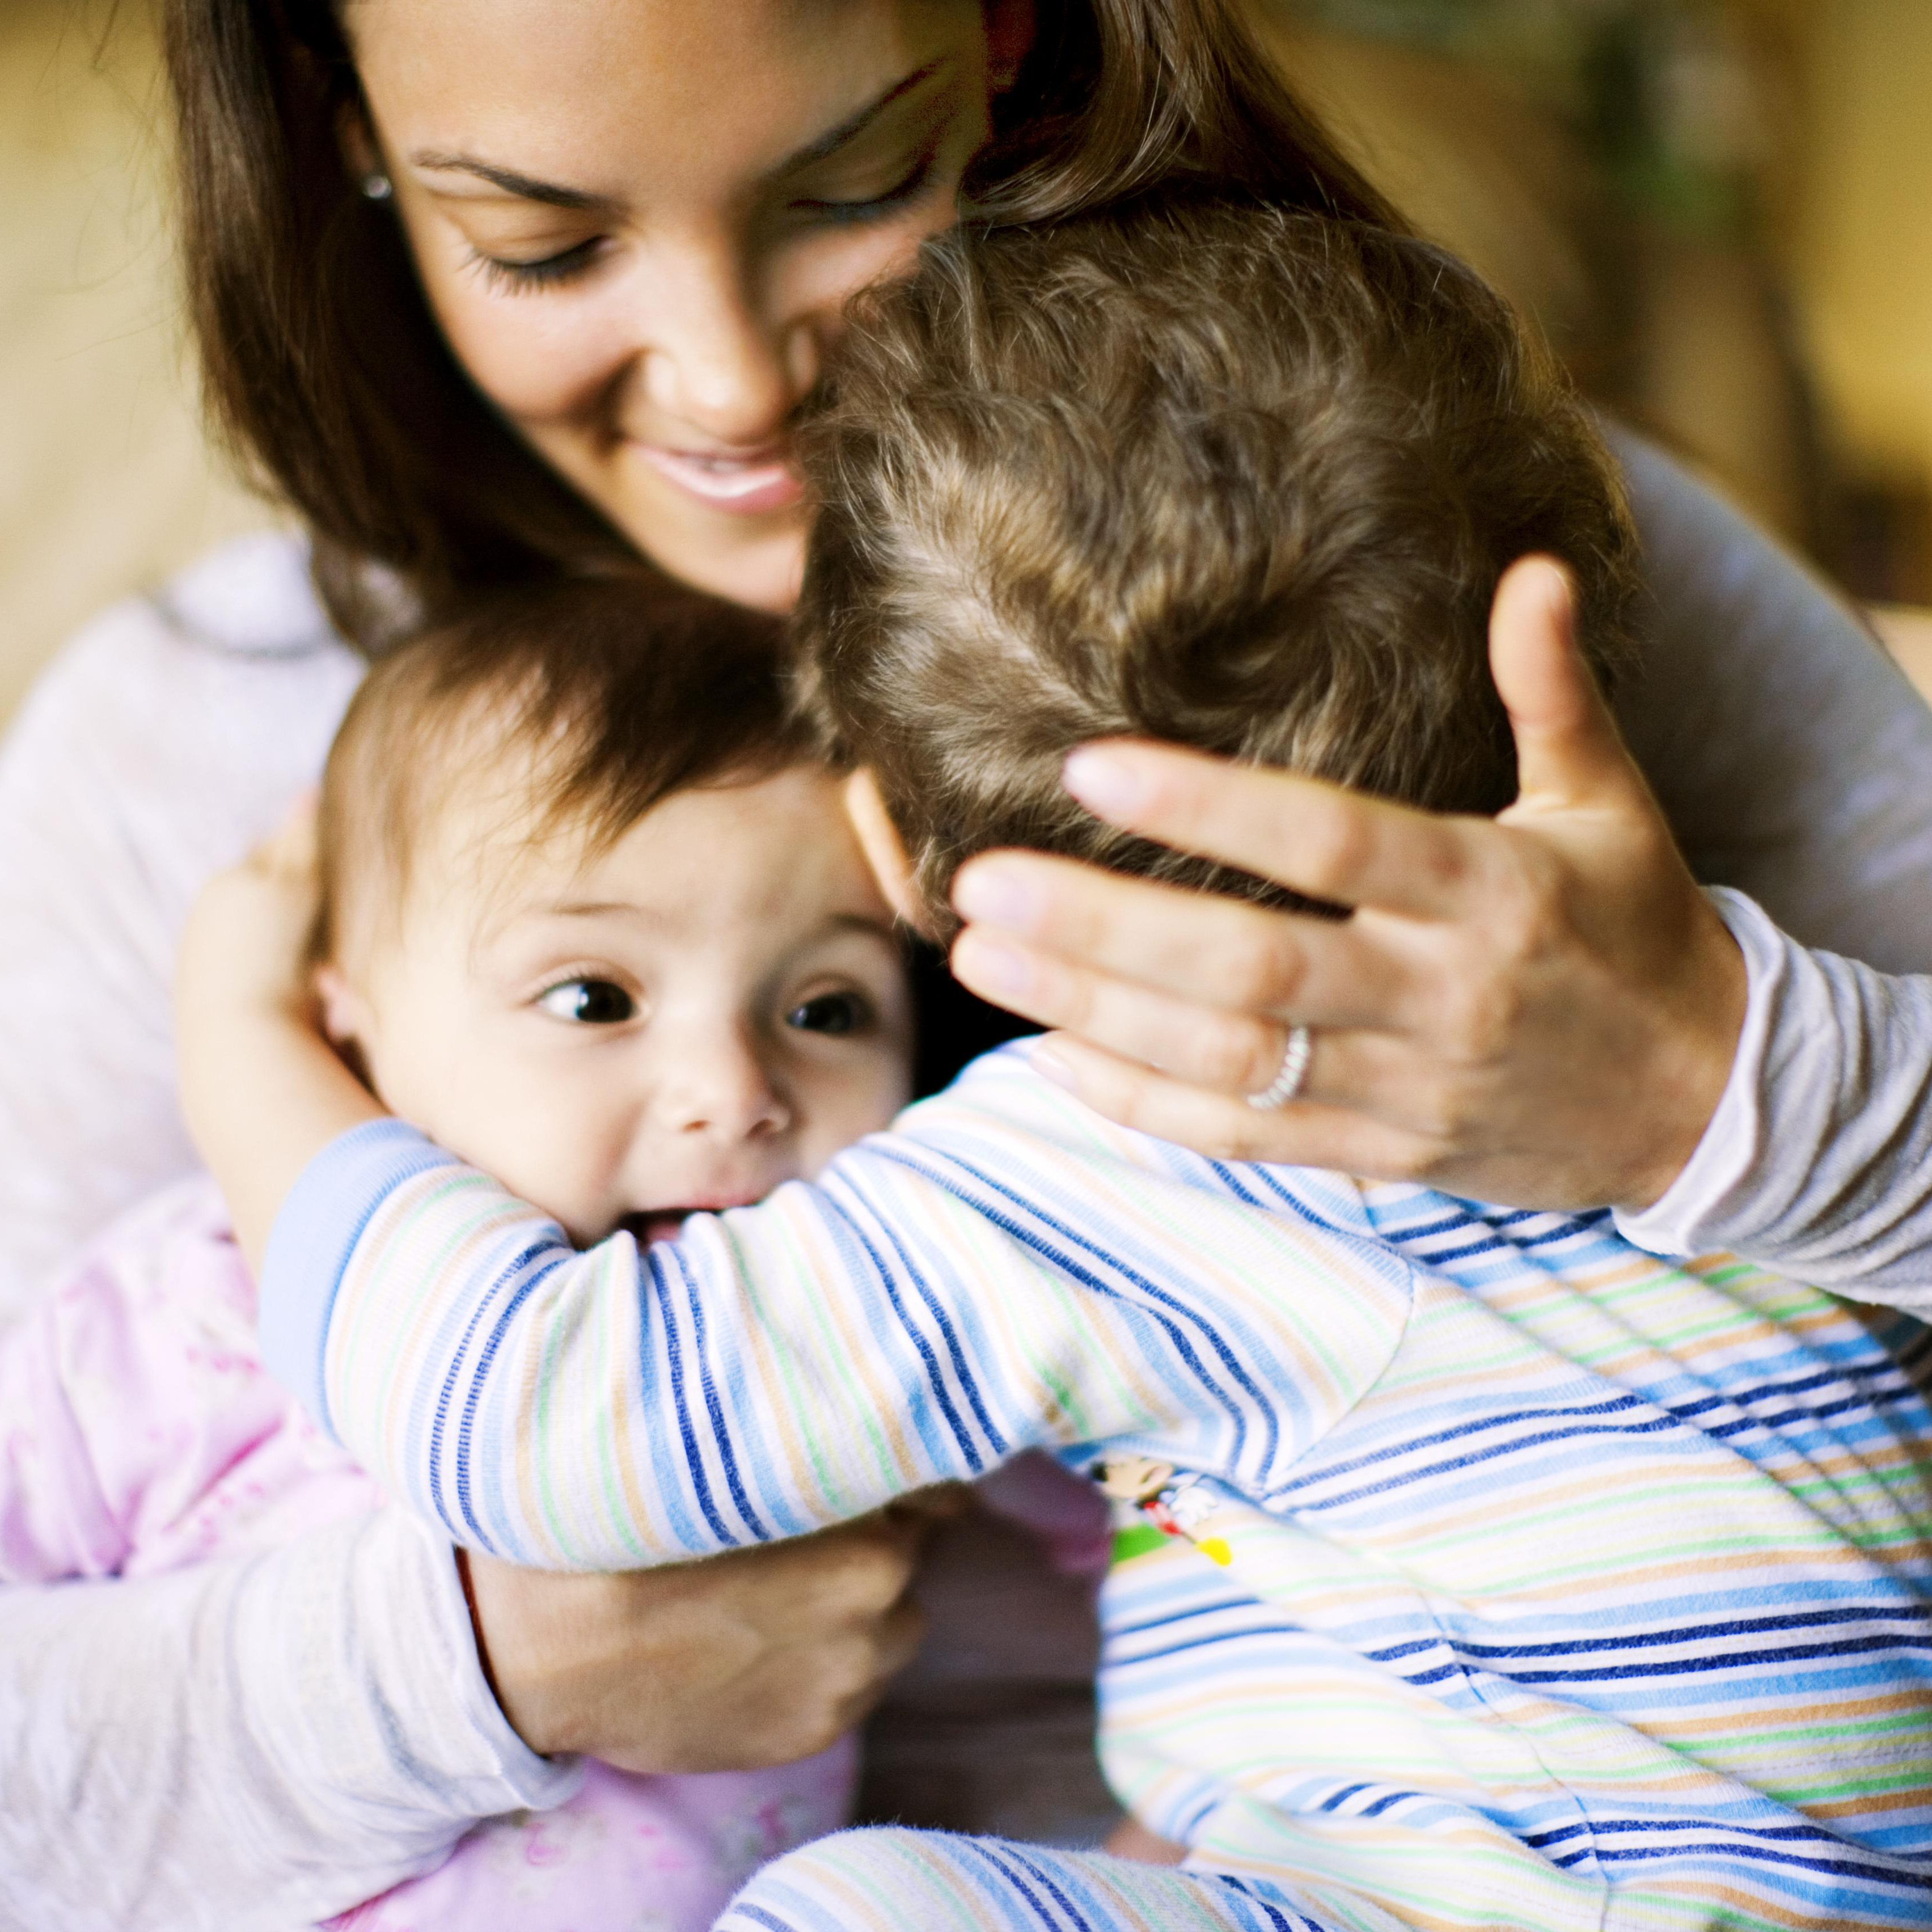 If and When You Should File for Child Support